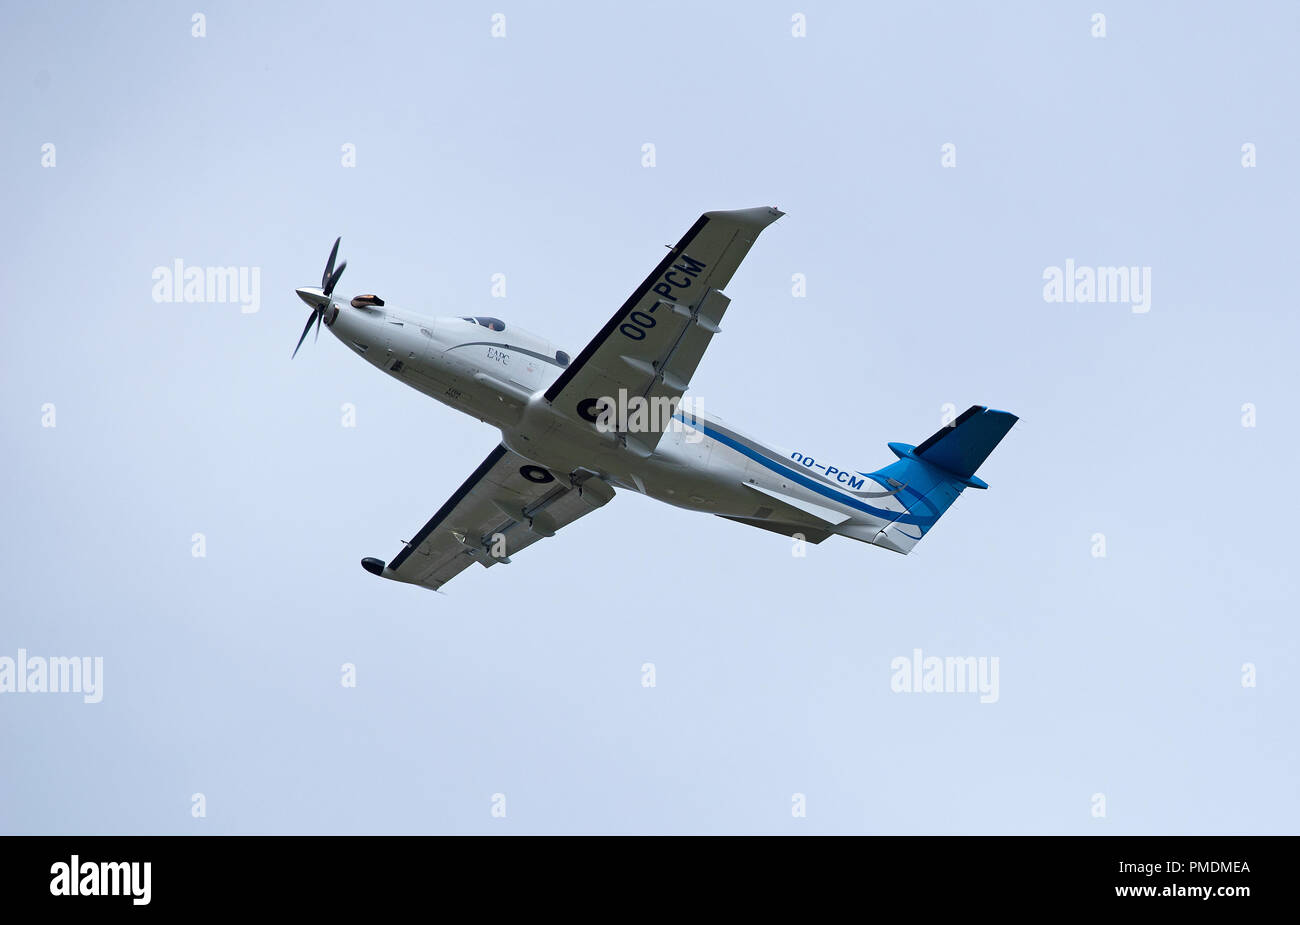 A pc12/47e Reg OO-PCM departing from Inverness in the SCOTTISH hIGHLANDS. - Stock Image